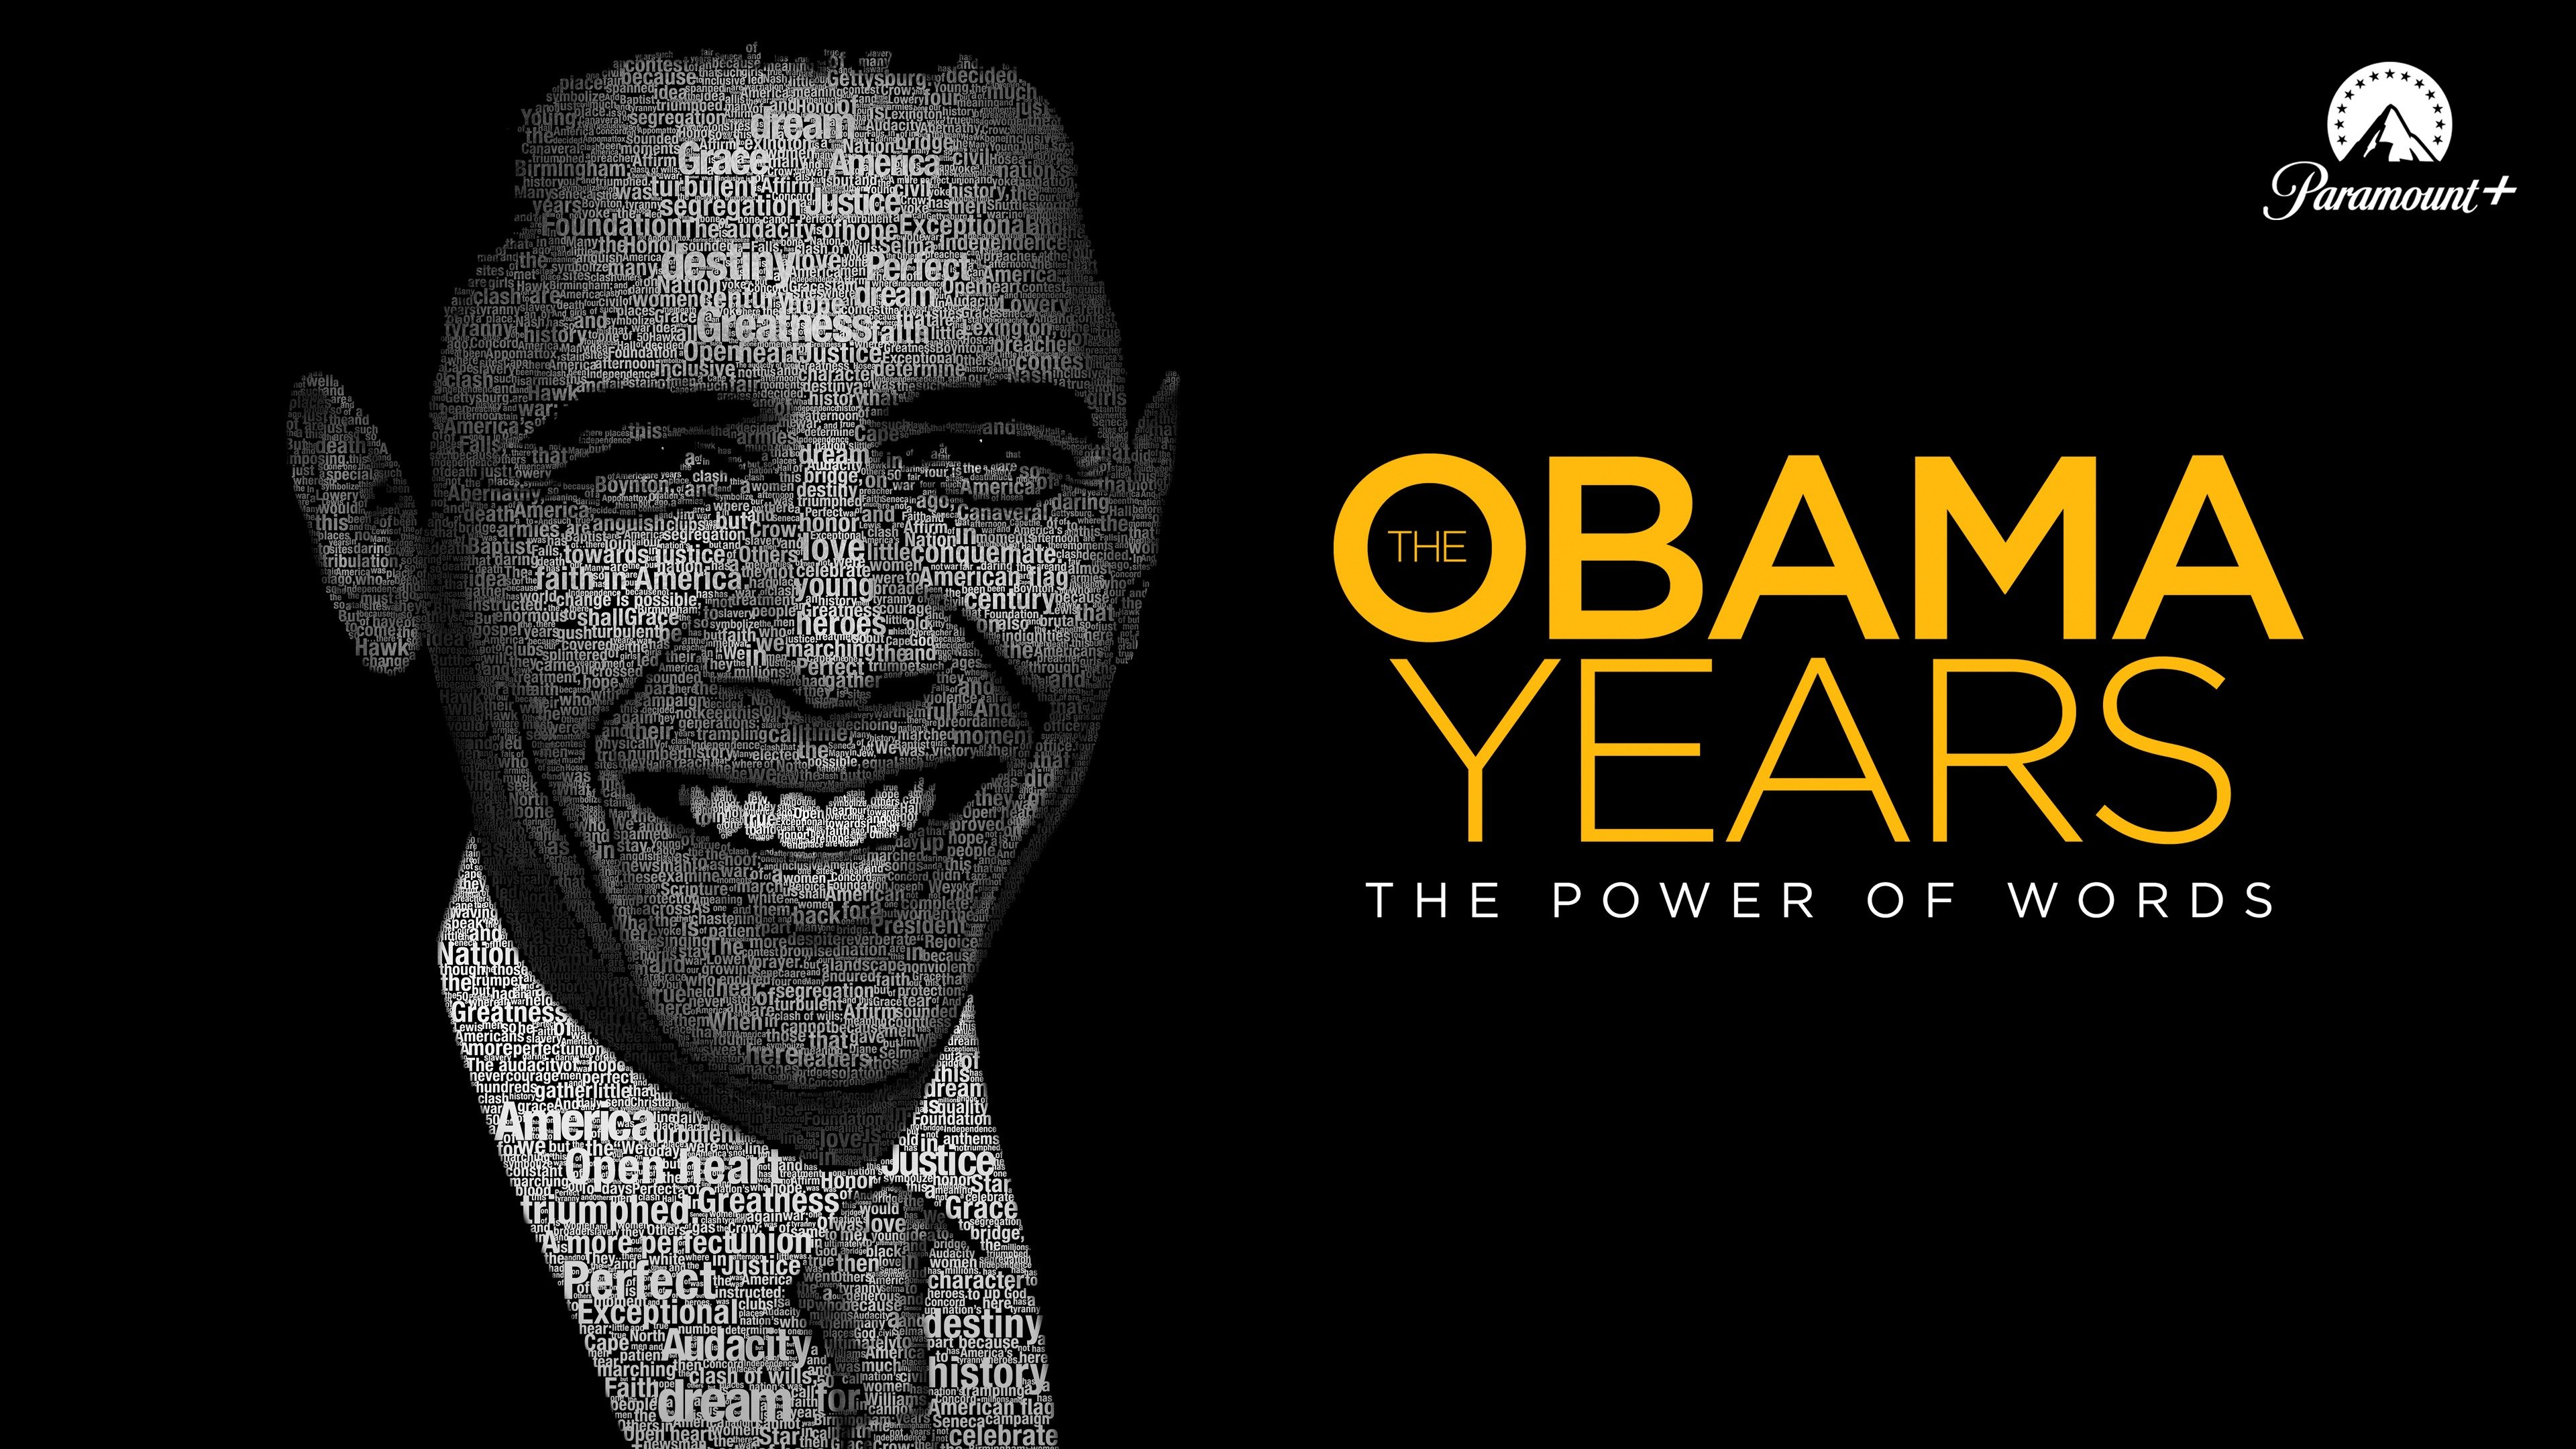 The Obama Years: The Power of Words